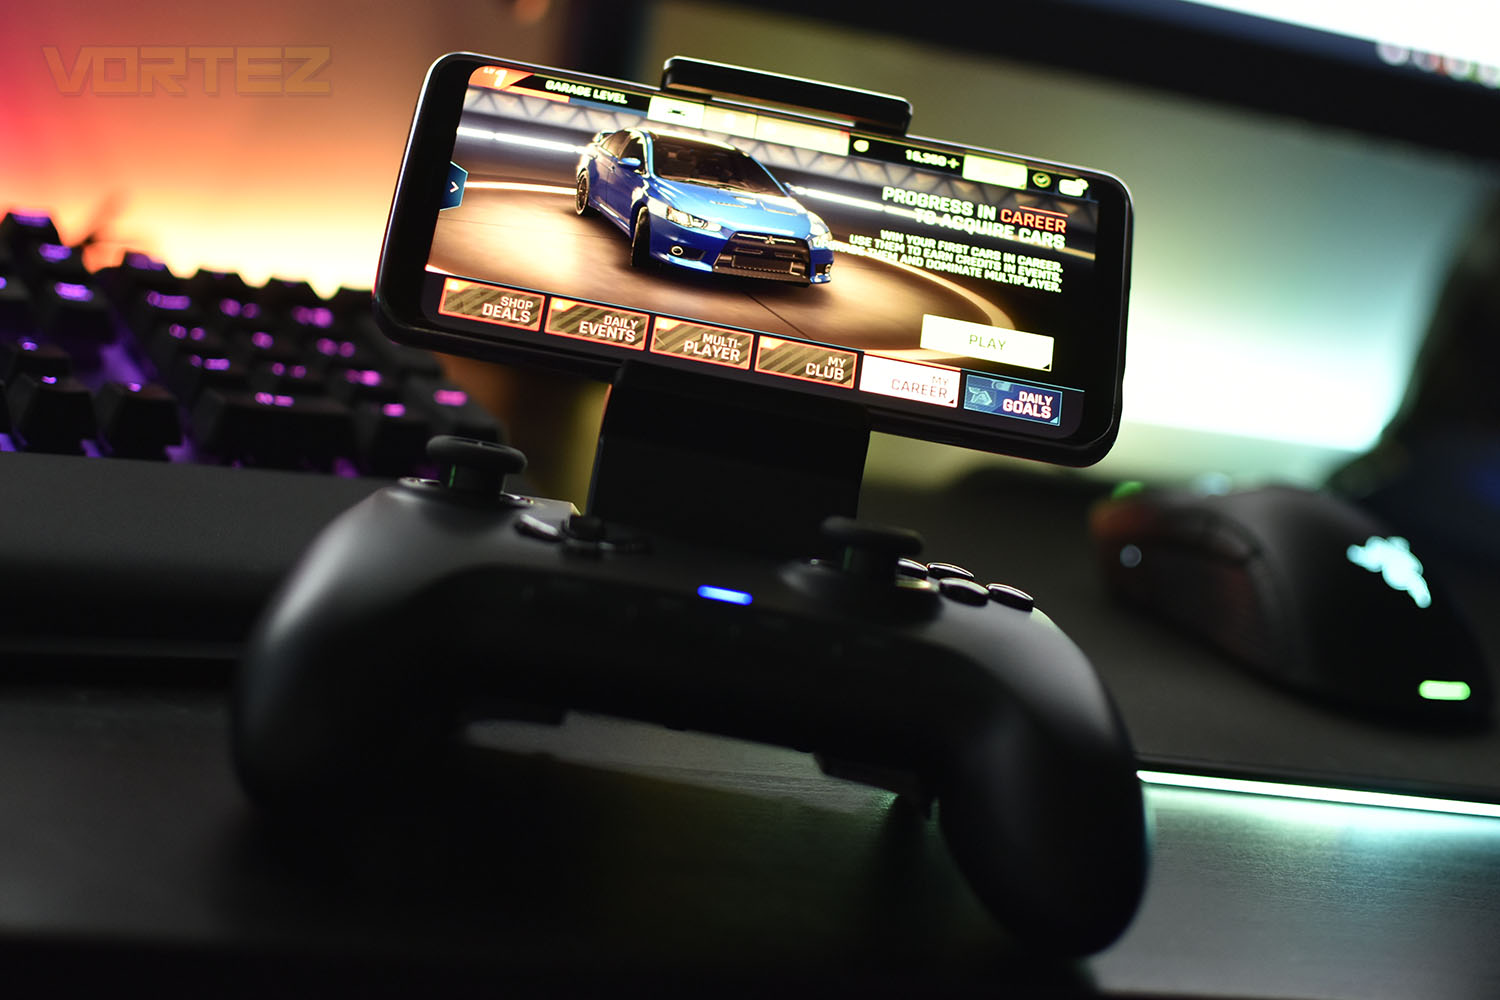 Razer Raiju Mobile Review Introduction Enjoy total freedom gaming wirelessly whether at home or at your best mates', and simply switch to wired gameplay during a tournament for that extra assurance. razer raiju mobile review introduction